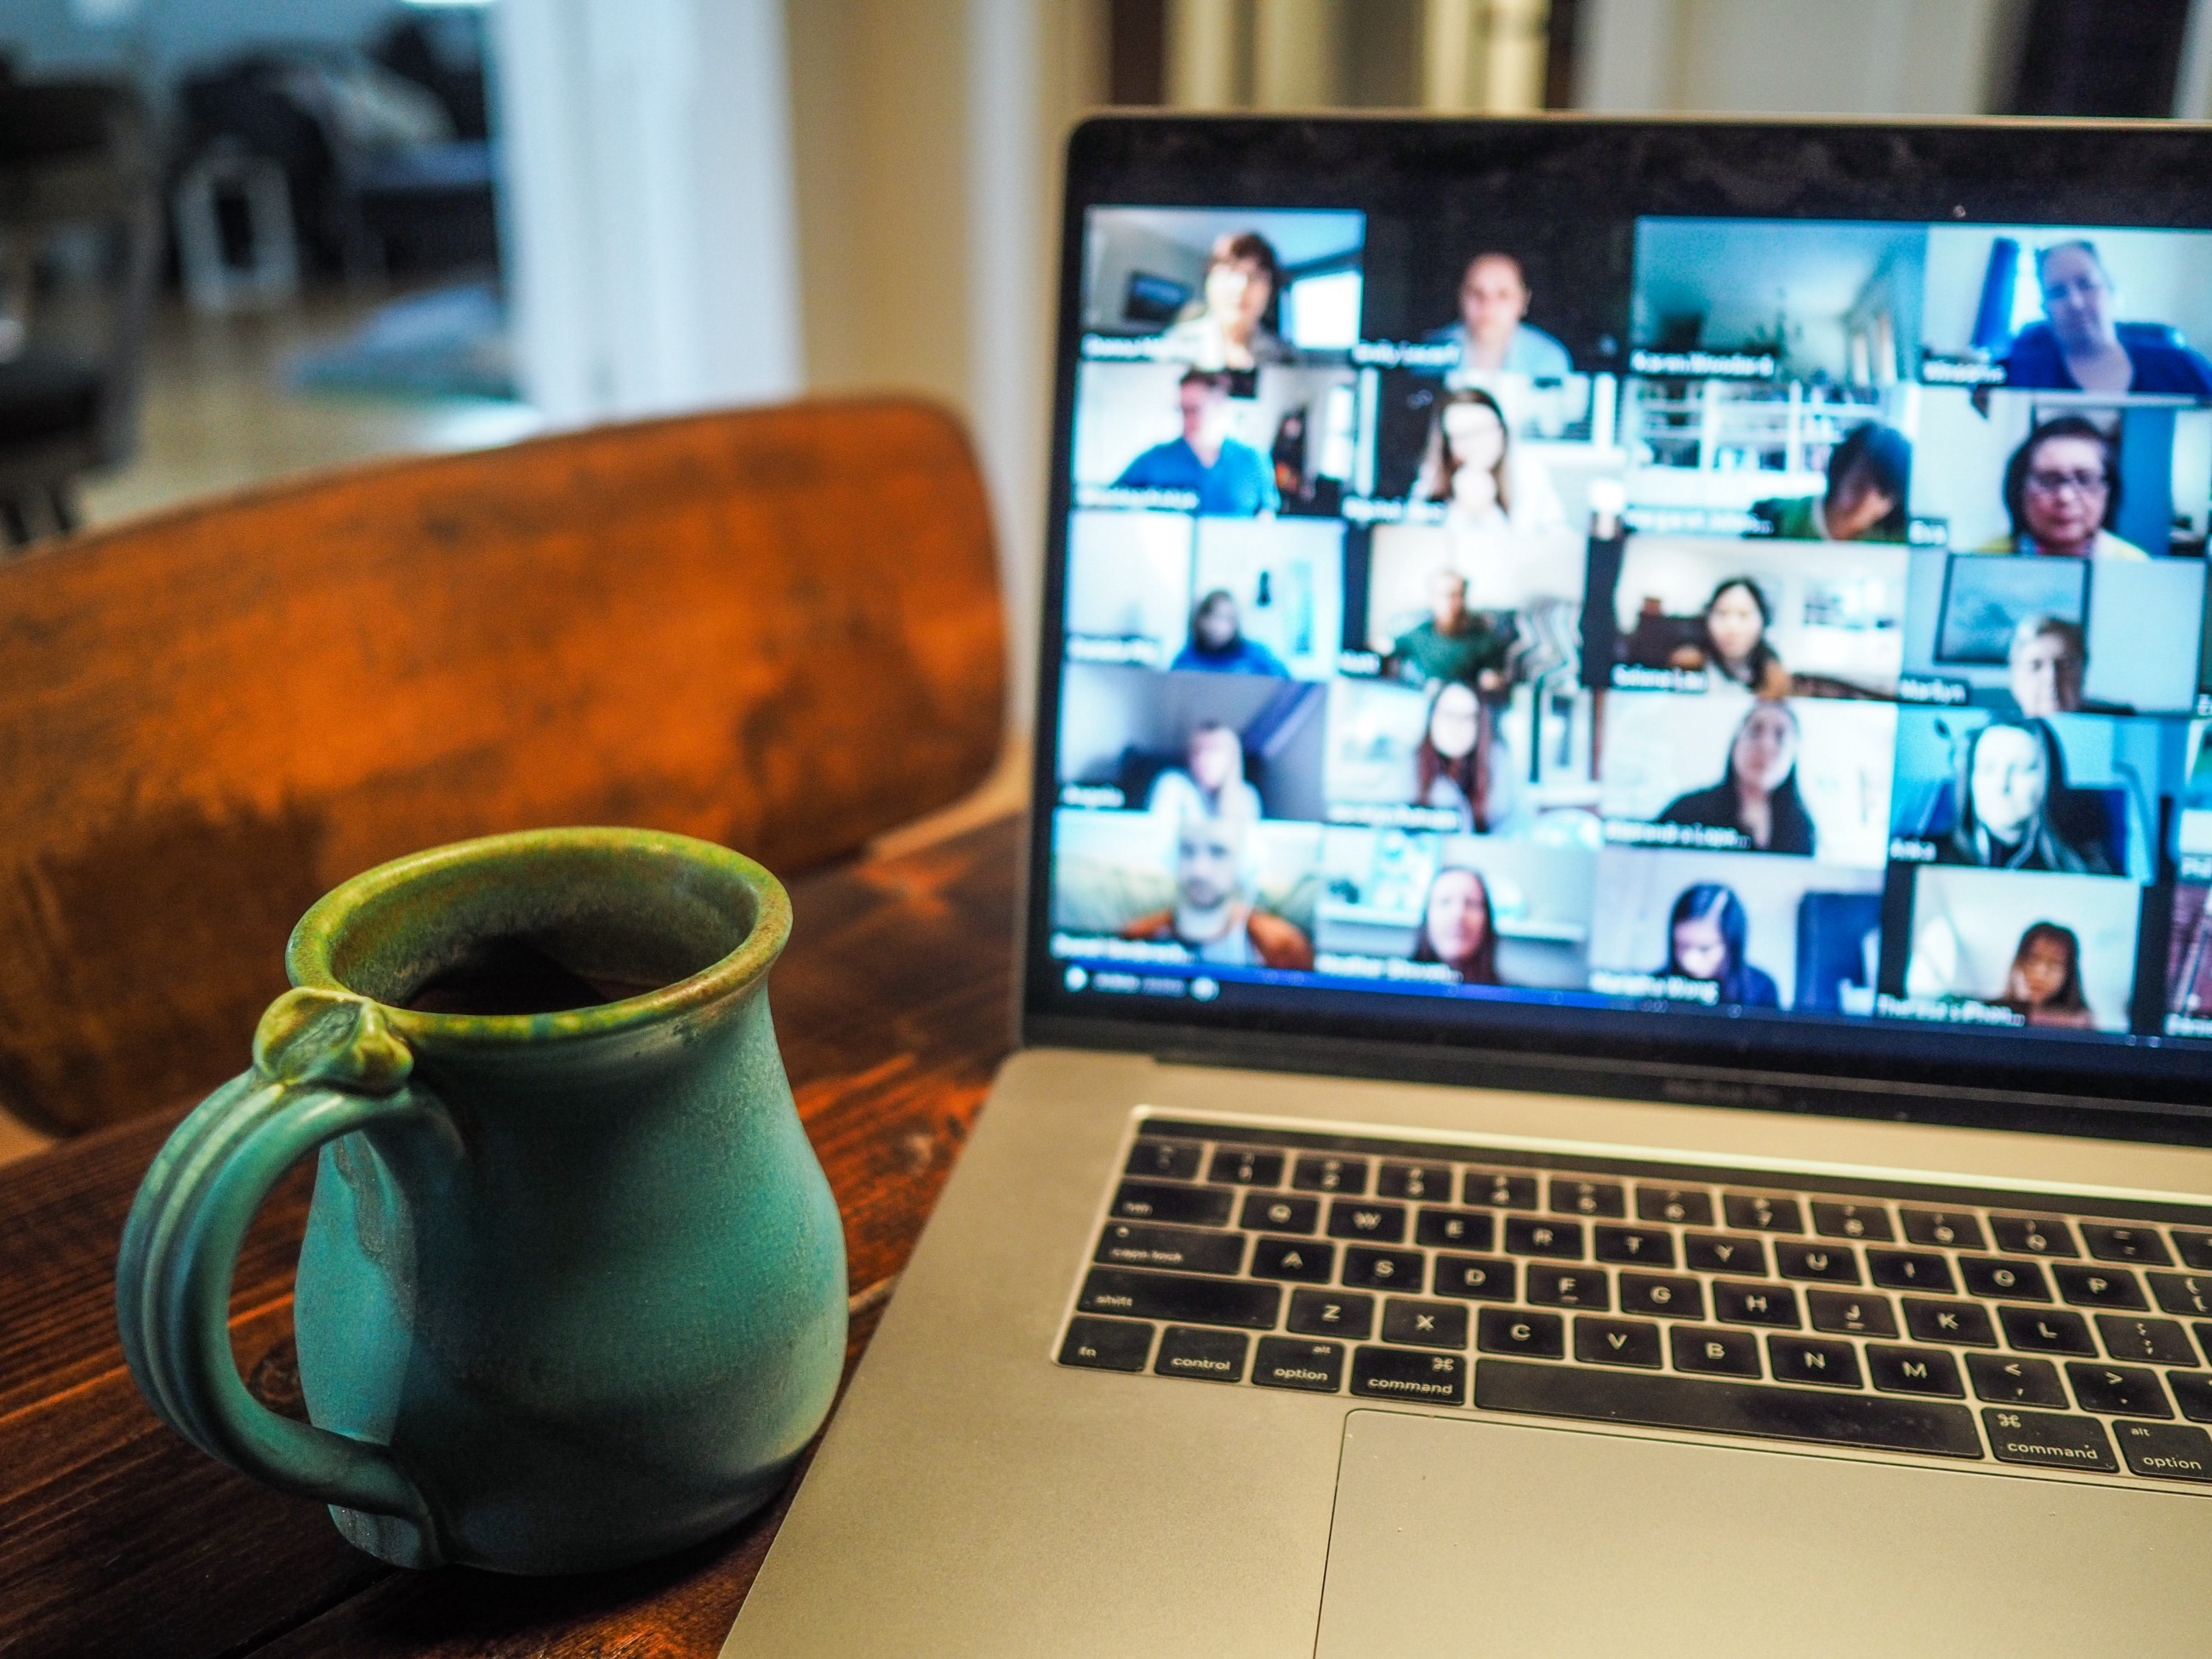 3 Ways Leaders Can Facilitate Social Opportunities While Working Remotely